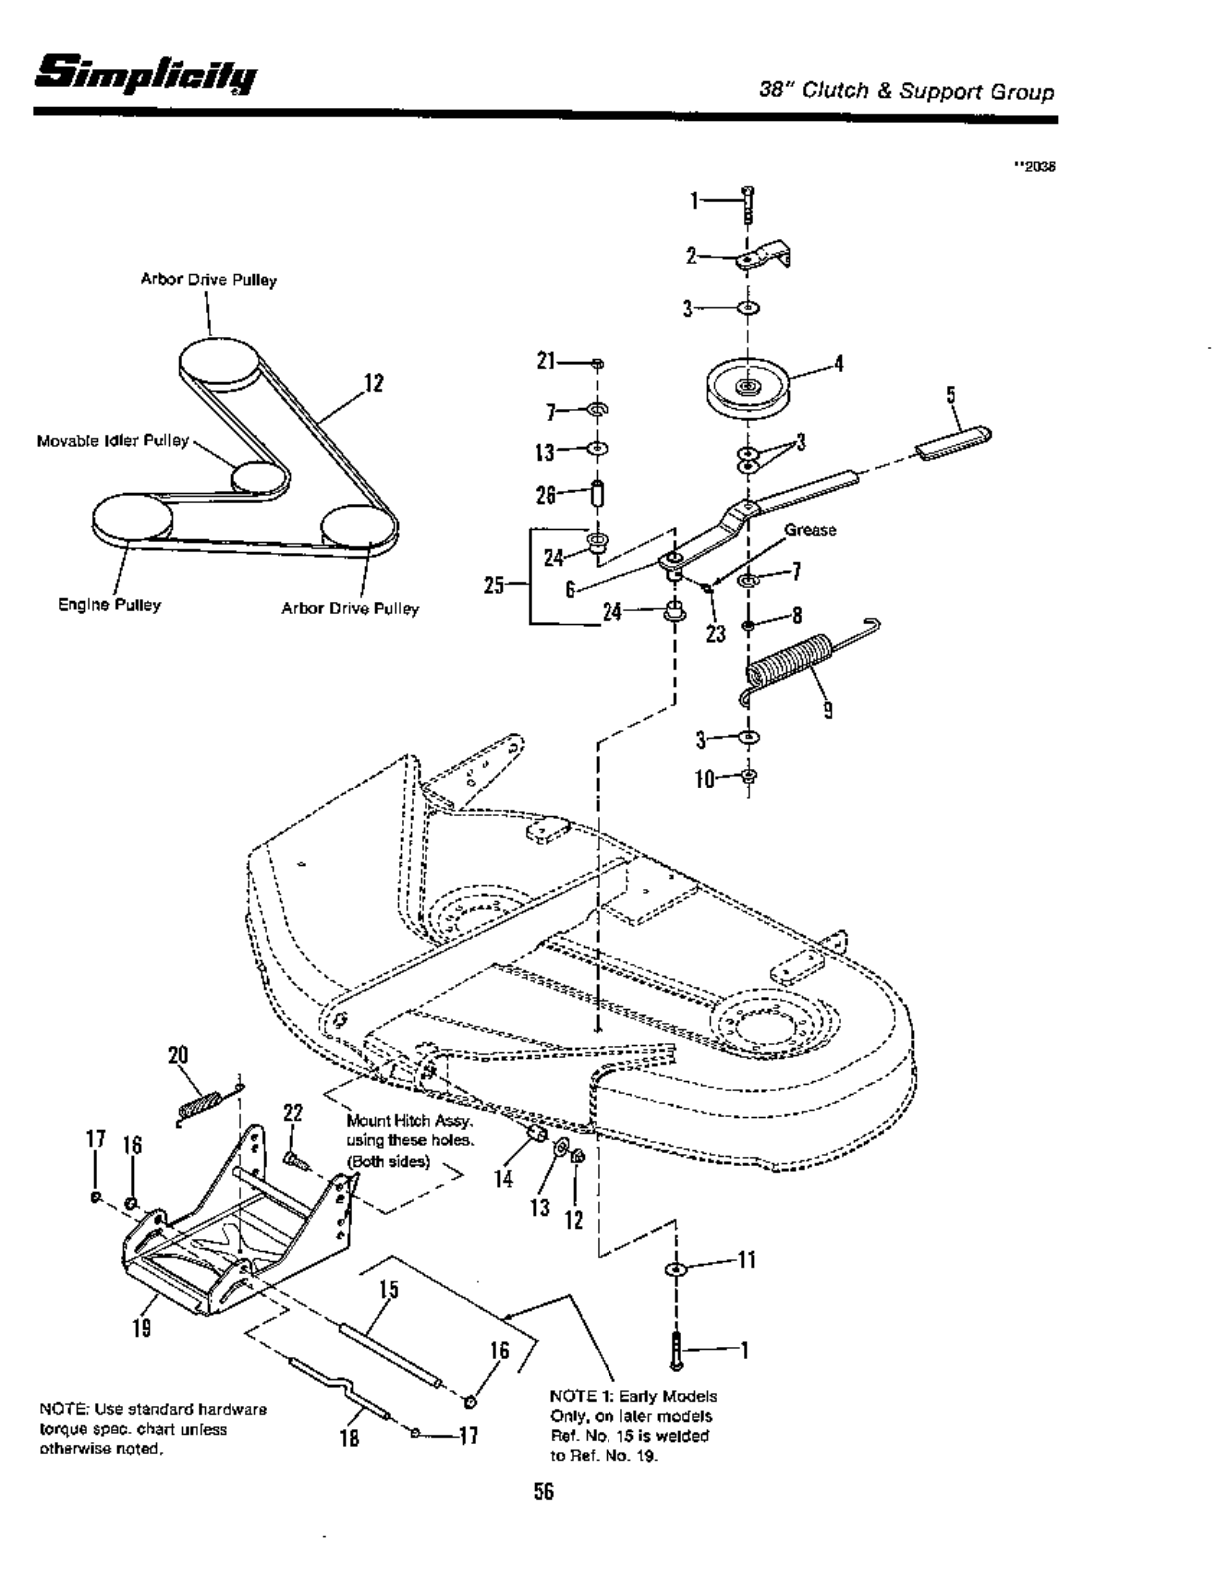 Page 58 of Simplicity Lawn Mower 12.5 LTH User Guide